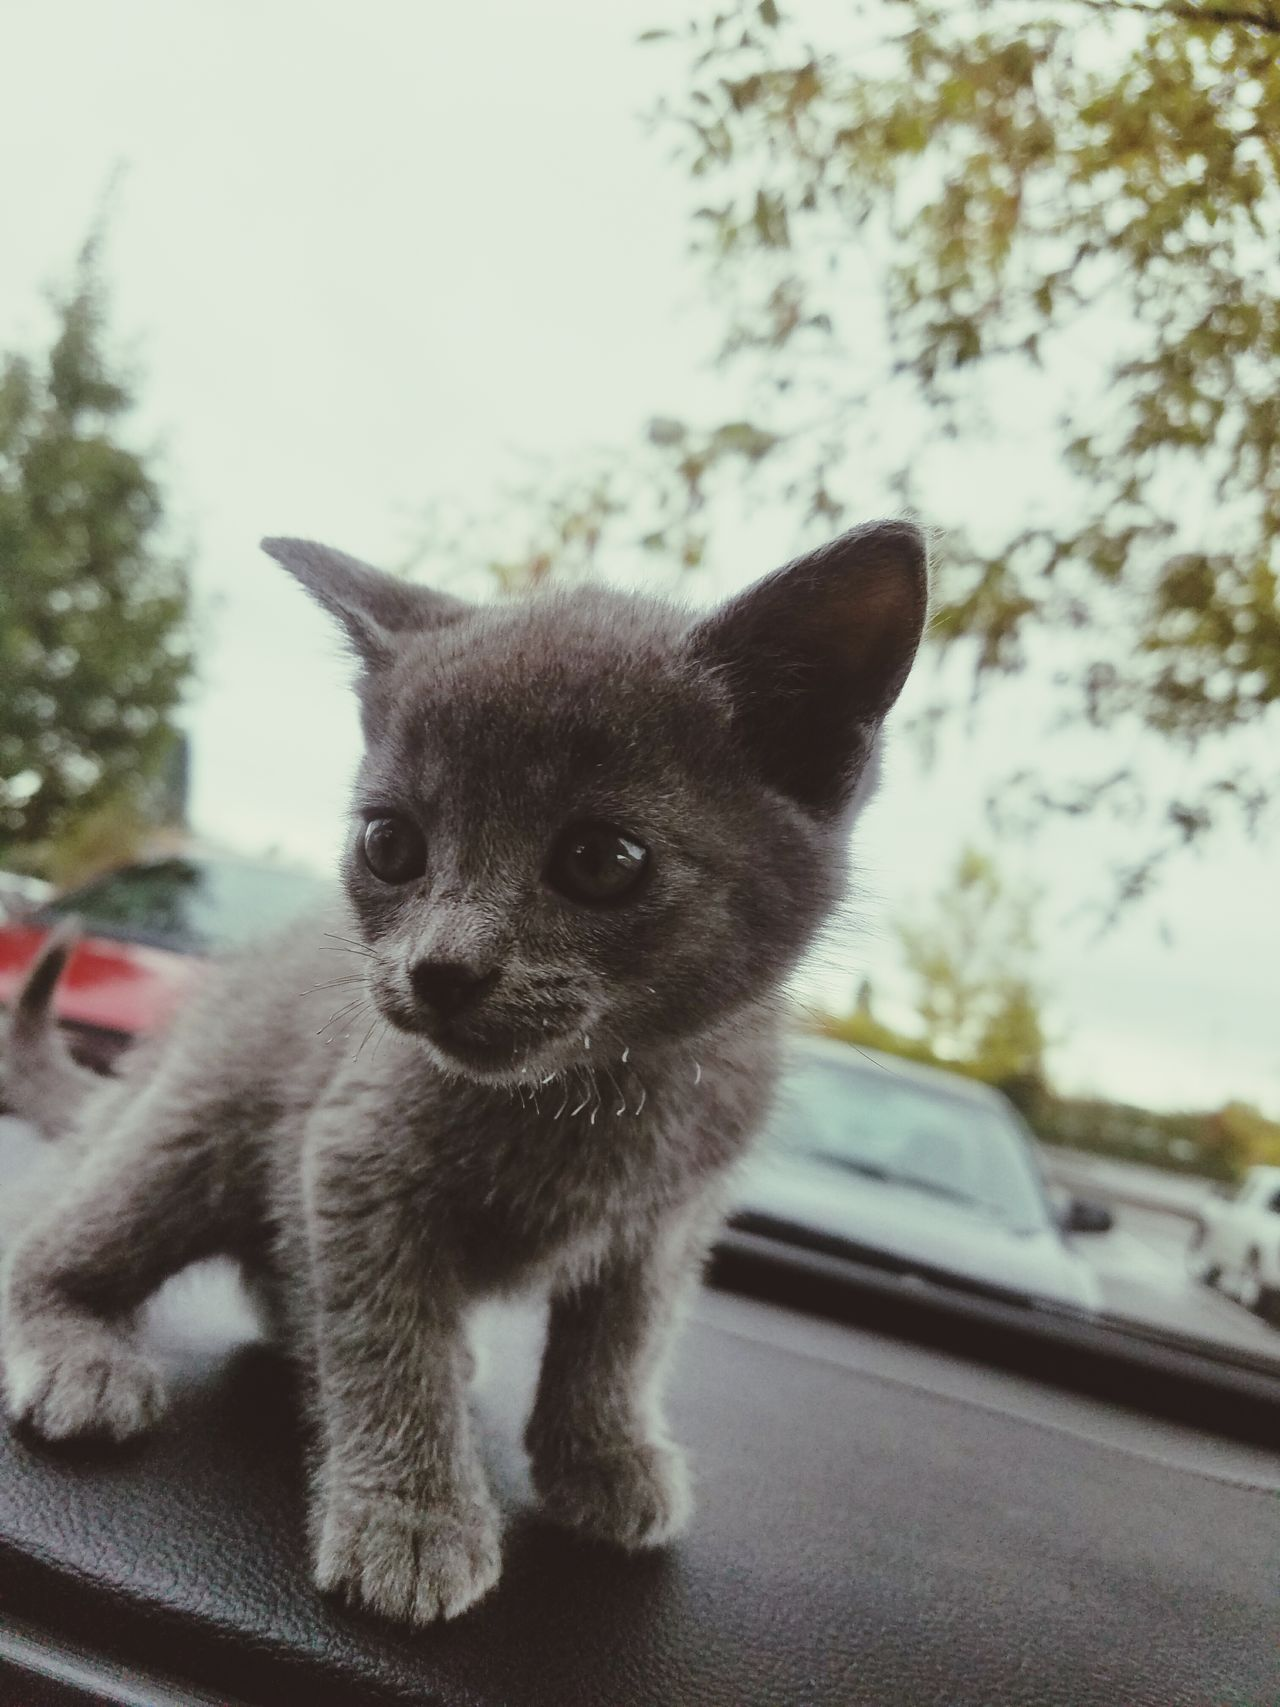 One Animal Animal Themes Looking At Camera Portrait Pets Mammal Domestic Animals No People Tree Dog Close-up Day Outdoors Love CarRides Kittens Animallovers Kittycat Looking At Camera Family❤